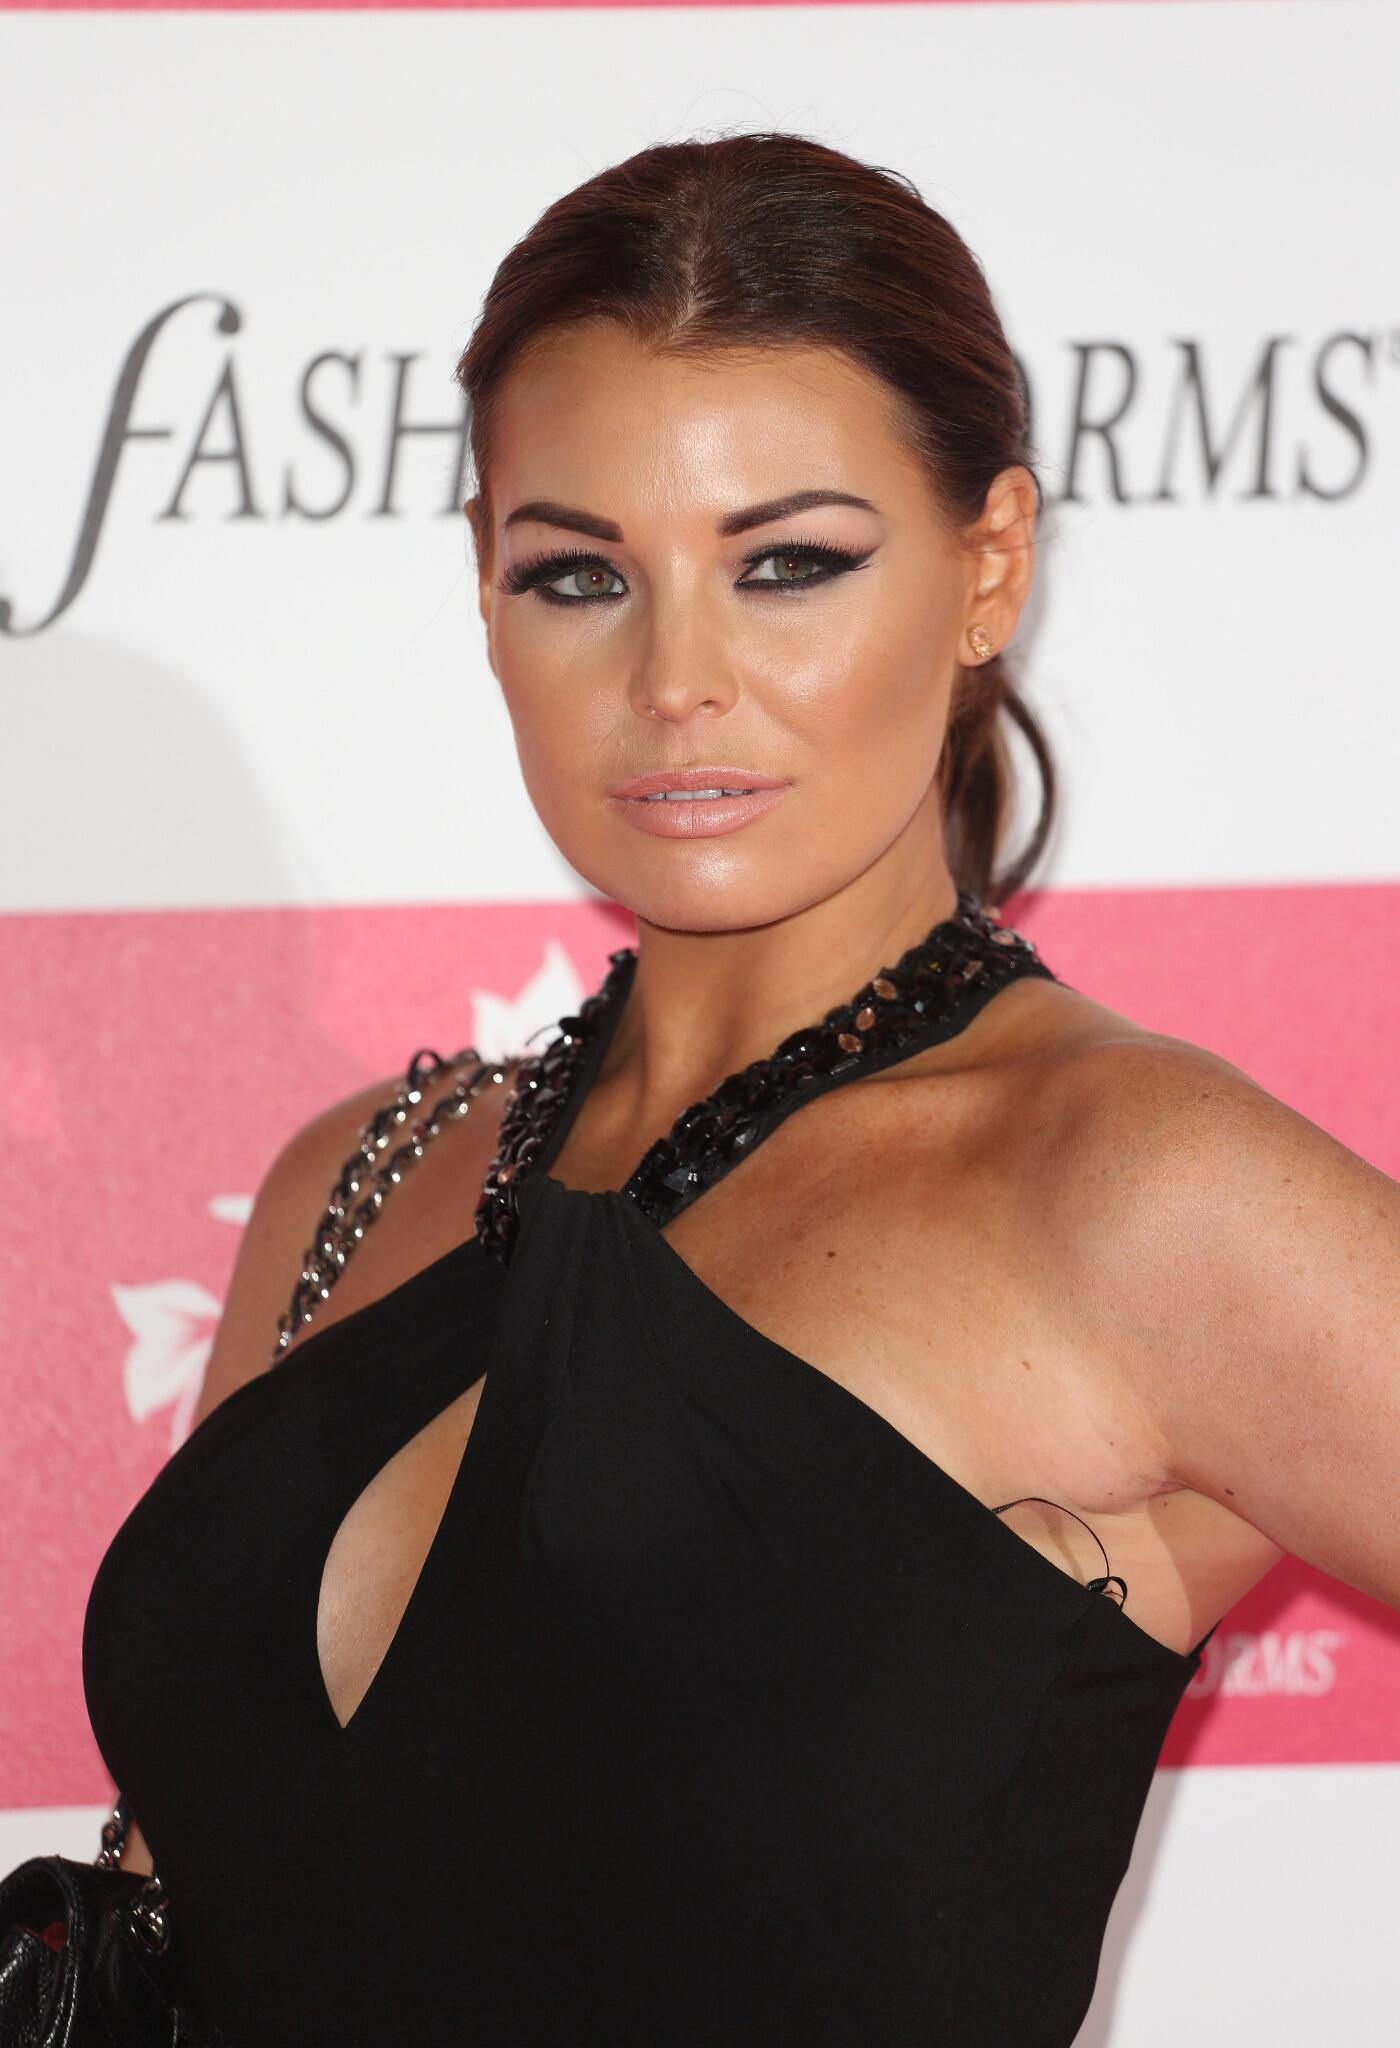 RT @Lukehill1999: [UNSEEN] @MissJessWright_ at an event last night http://t.co/gQPeQah5xW""